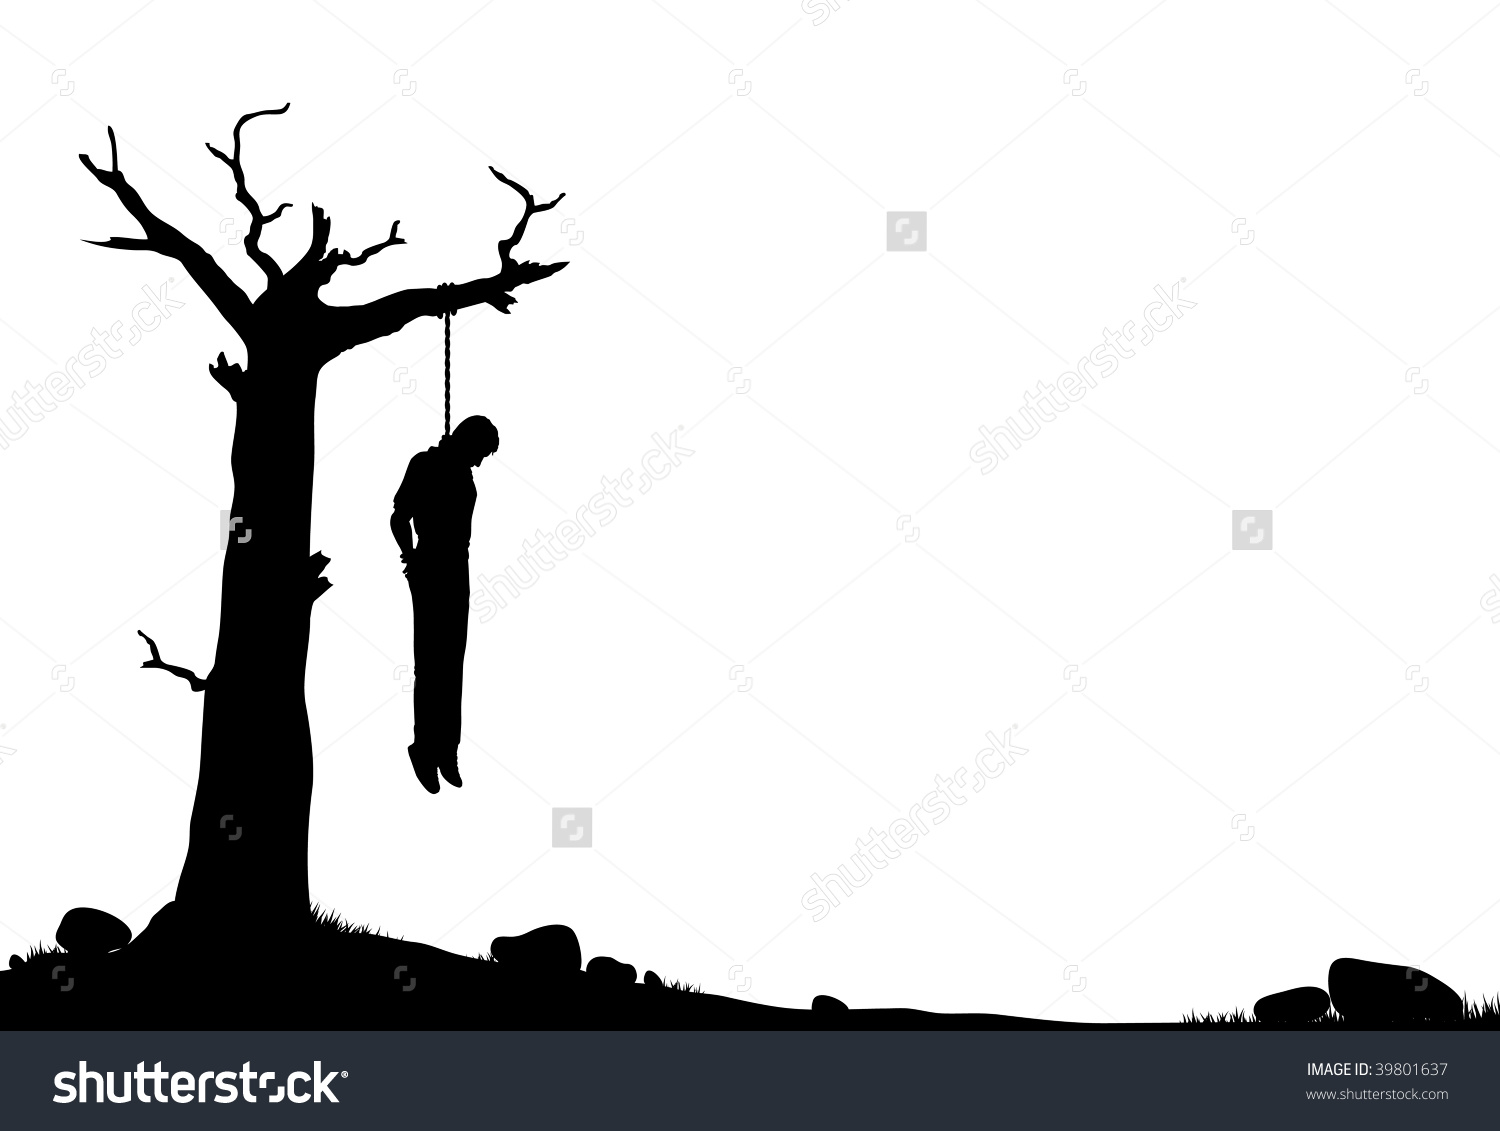 Man hanging by a rope clipart.